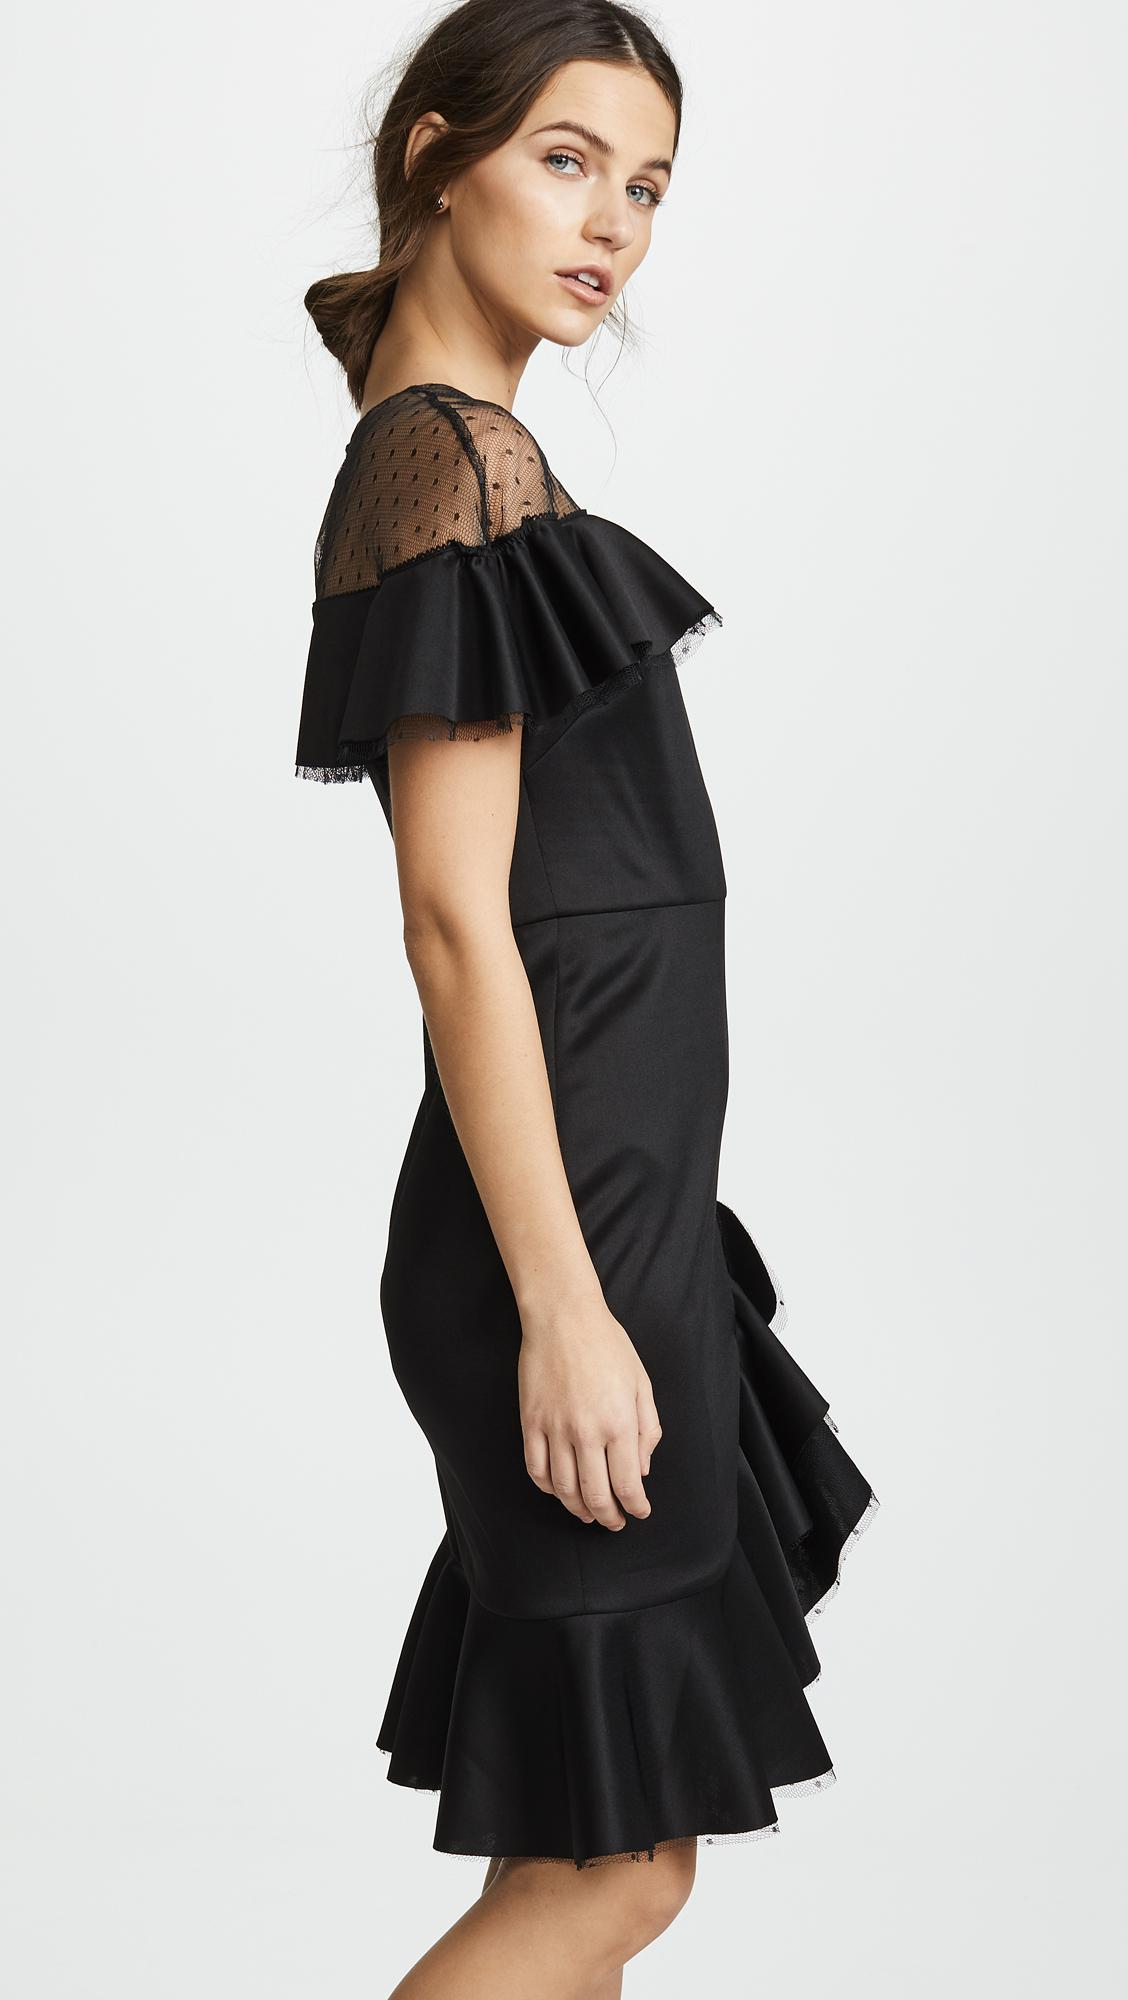 b6154ff5b93 Gallery. Previously sold at  Shopbop · Women s Neoprene Dresses Women s Black  Cocktail Dresses